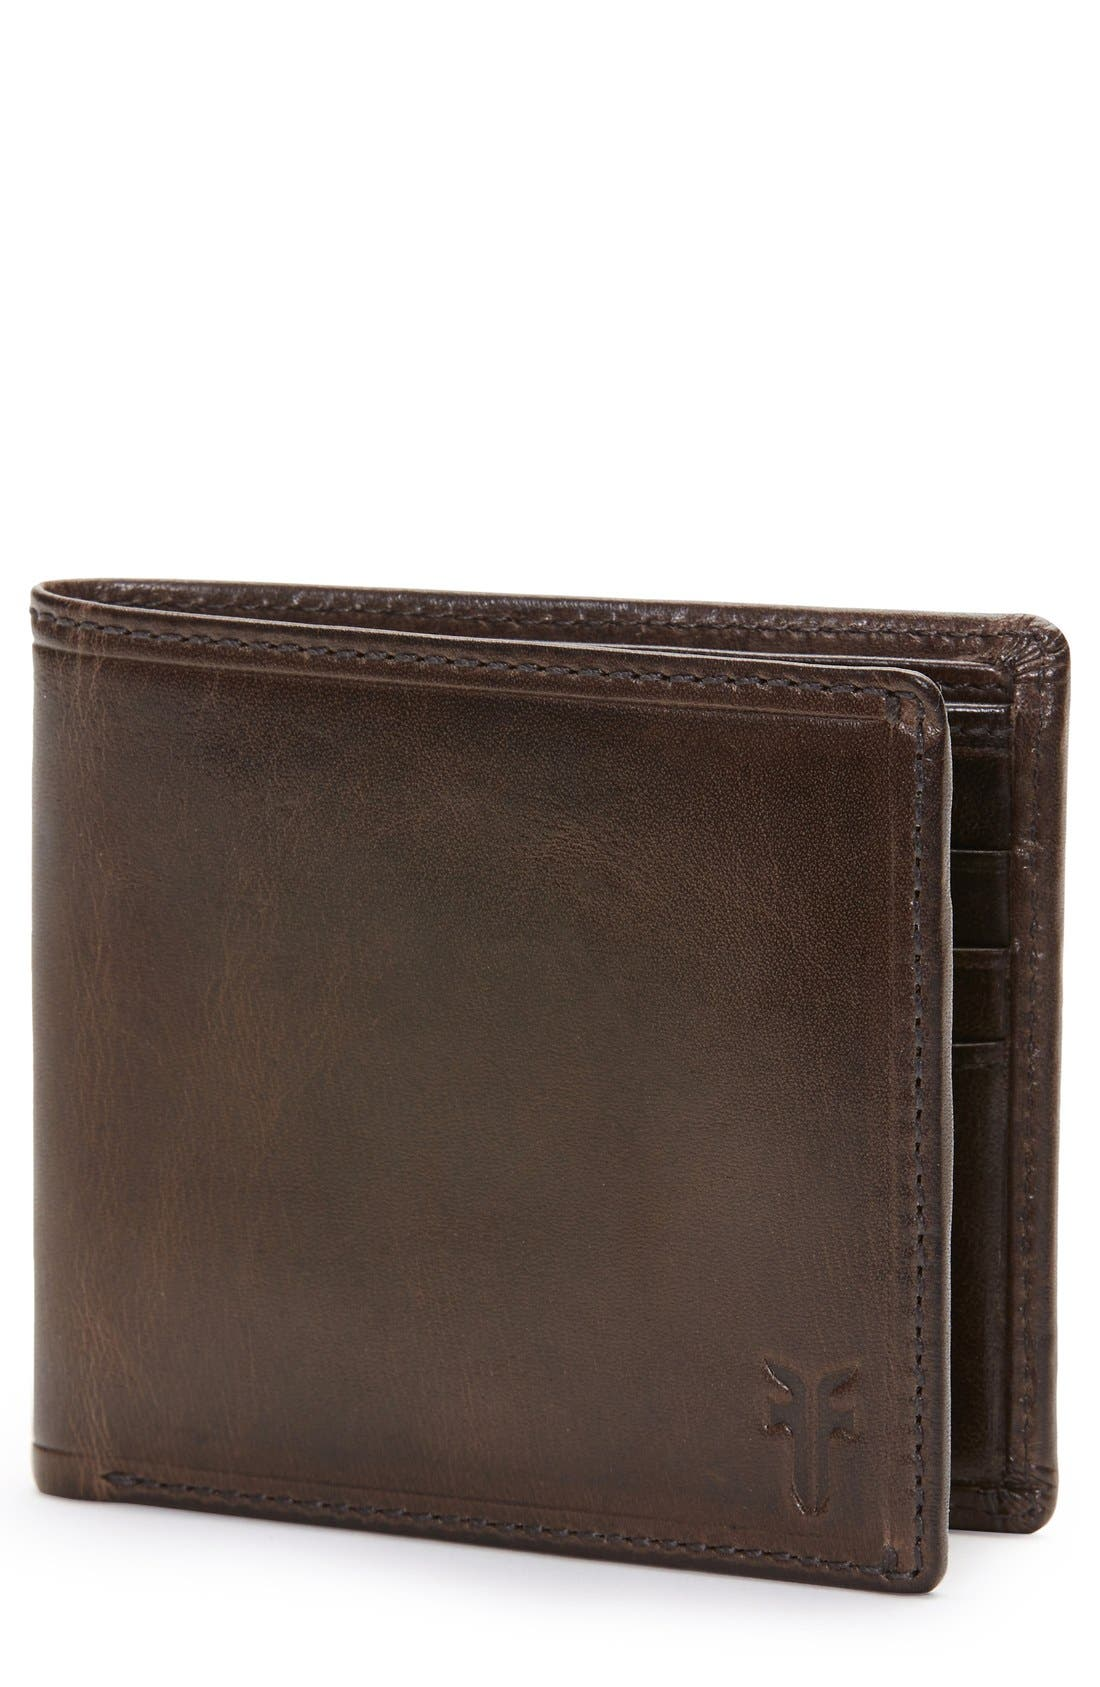 'Logan' Leather Billfold Wallet,                             Main thumbnail 1, color,                             DARK BROWN